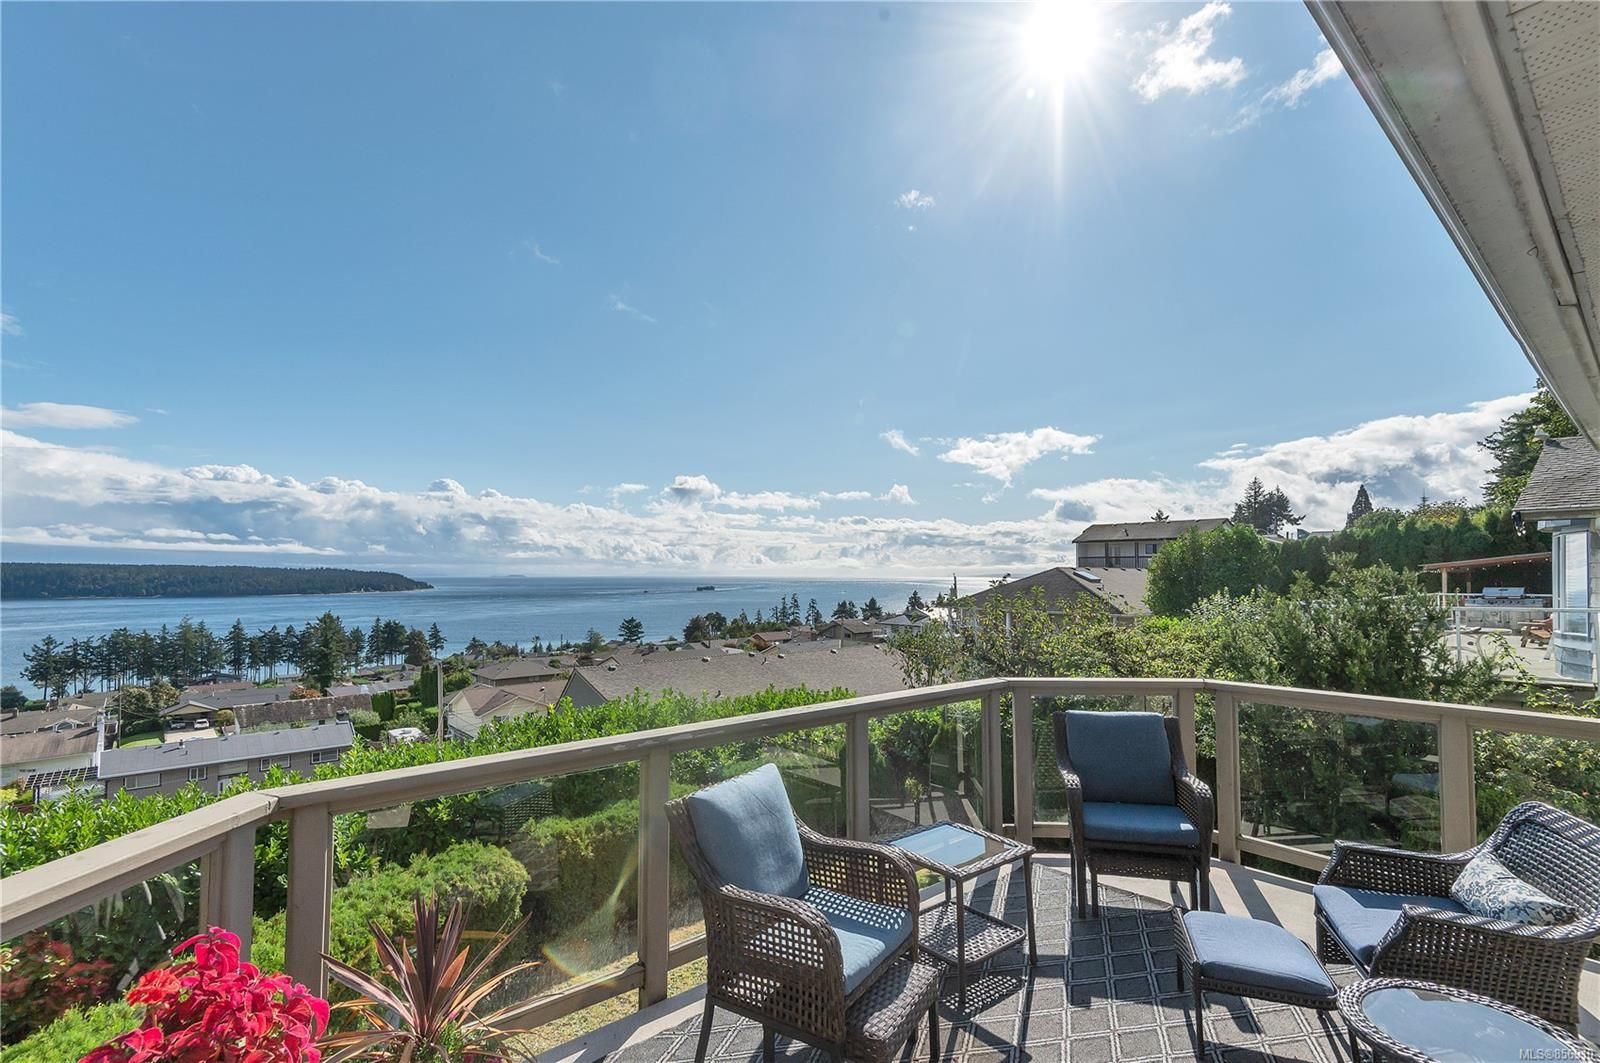 Photo 3: Photos: 215 S Alder St in : CR Campbell River Central House for sale (Campbell River)  : MLS®# 856910